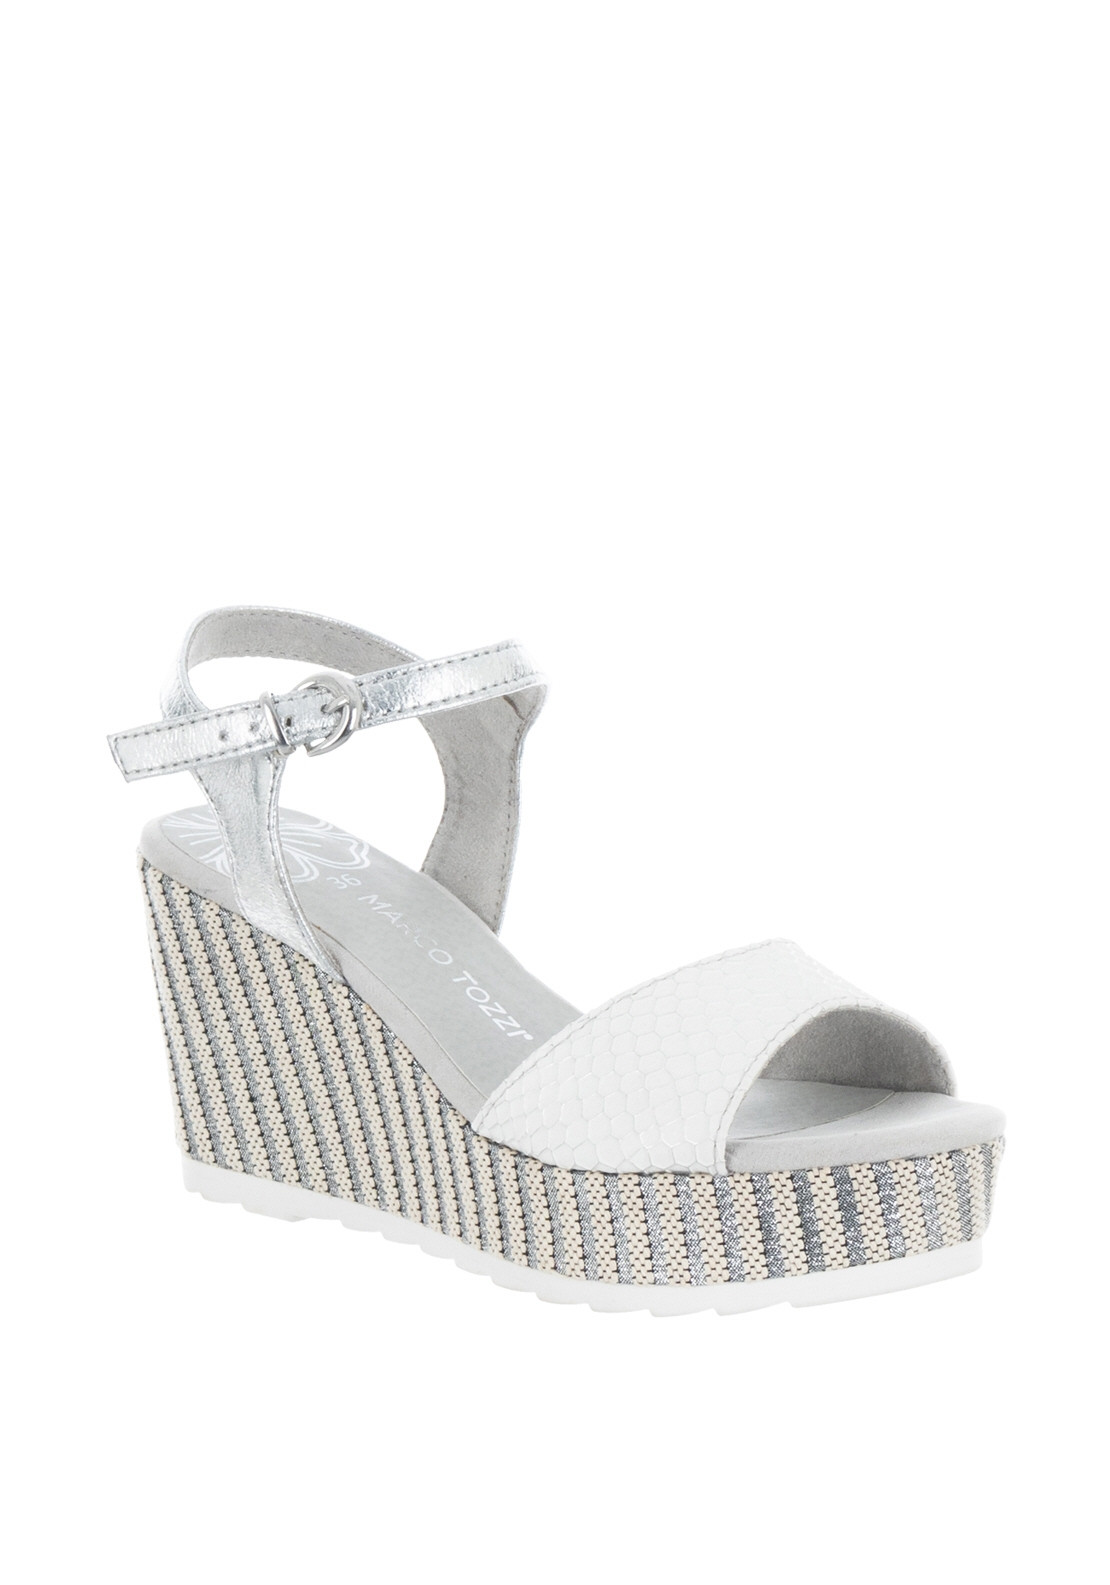 10f71dc5ff912 Marco Tozzi Reptile Woven Wedge Sandals, White | McElhinneys